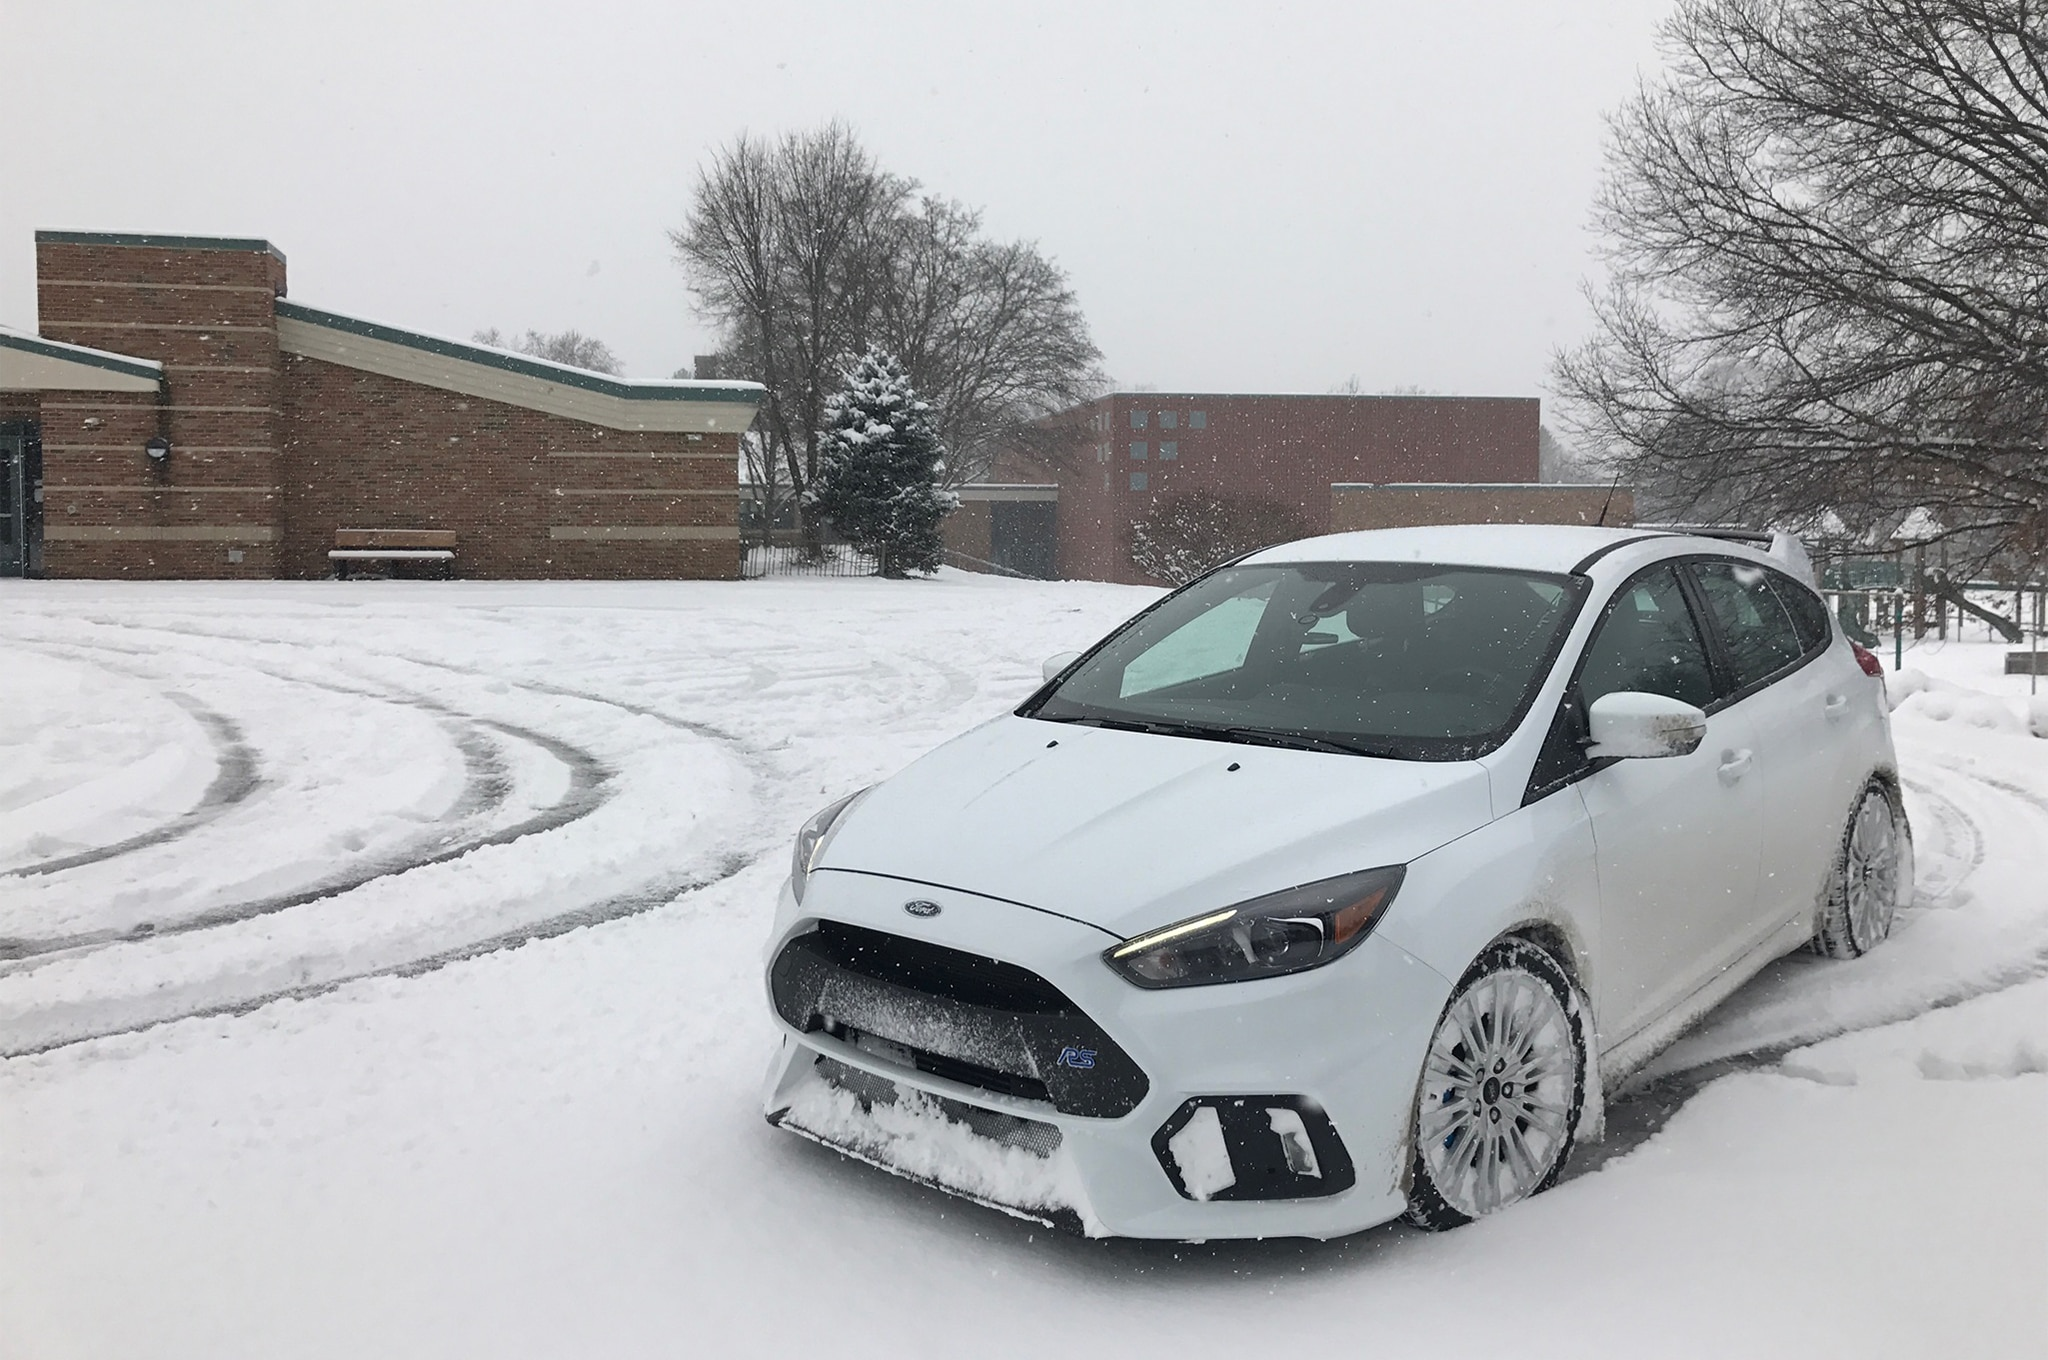 2016 Ford Focus Rs The Ownership Experience Conclusion Engine 2000 First Generation 02 2002 Then